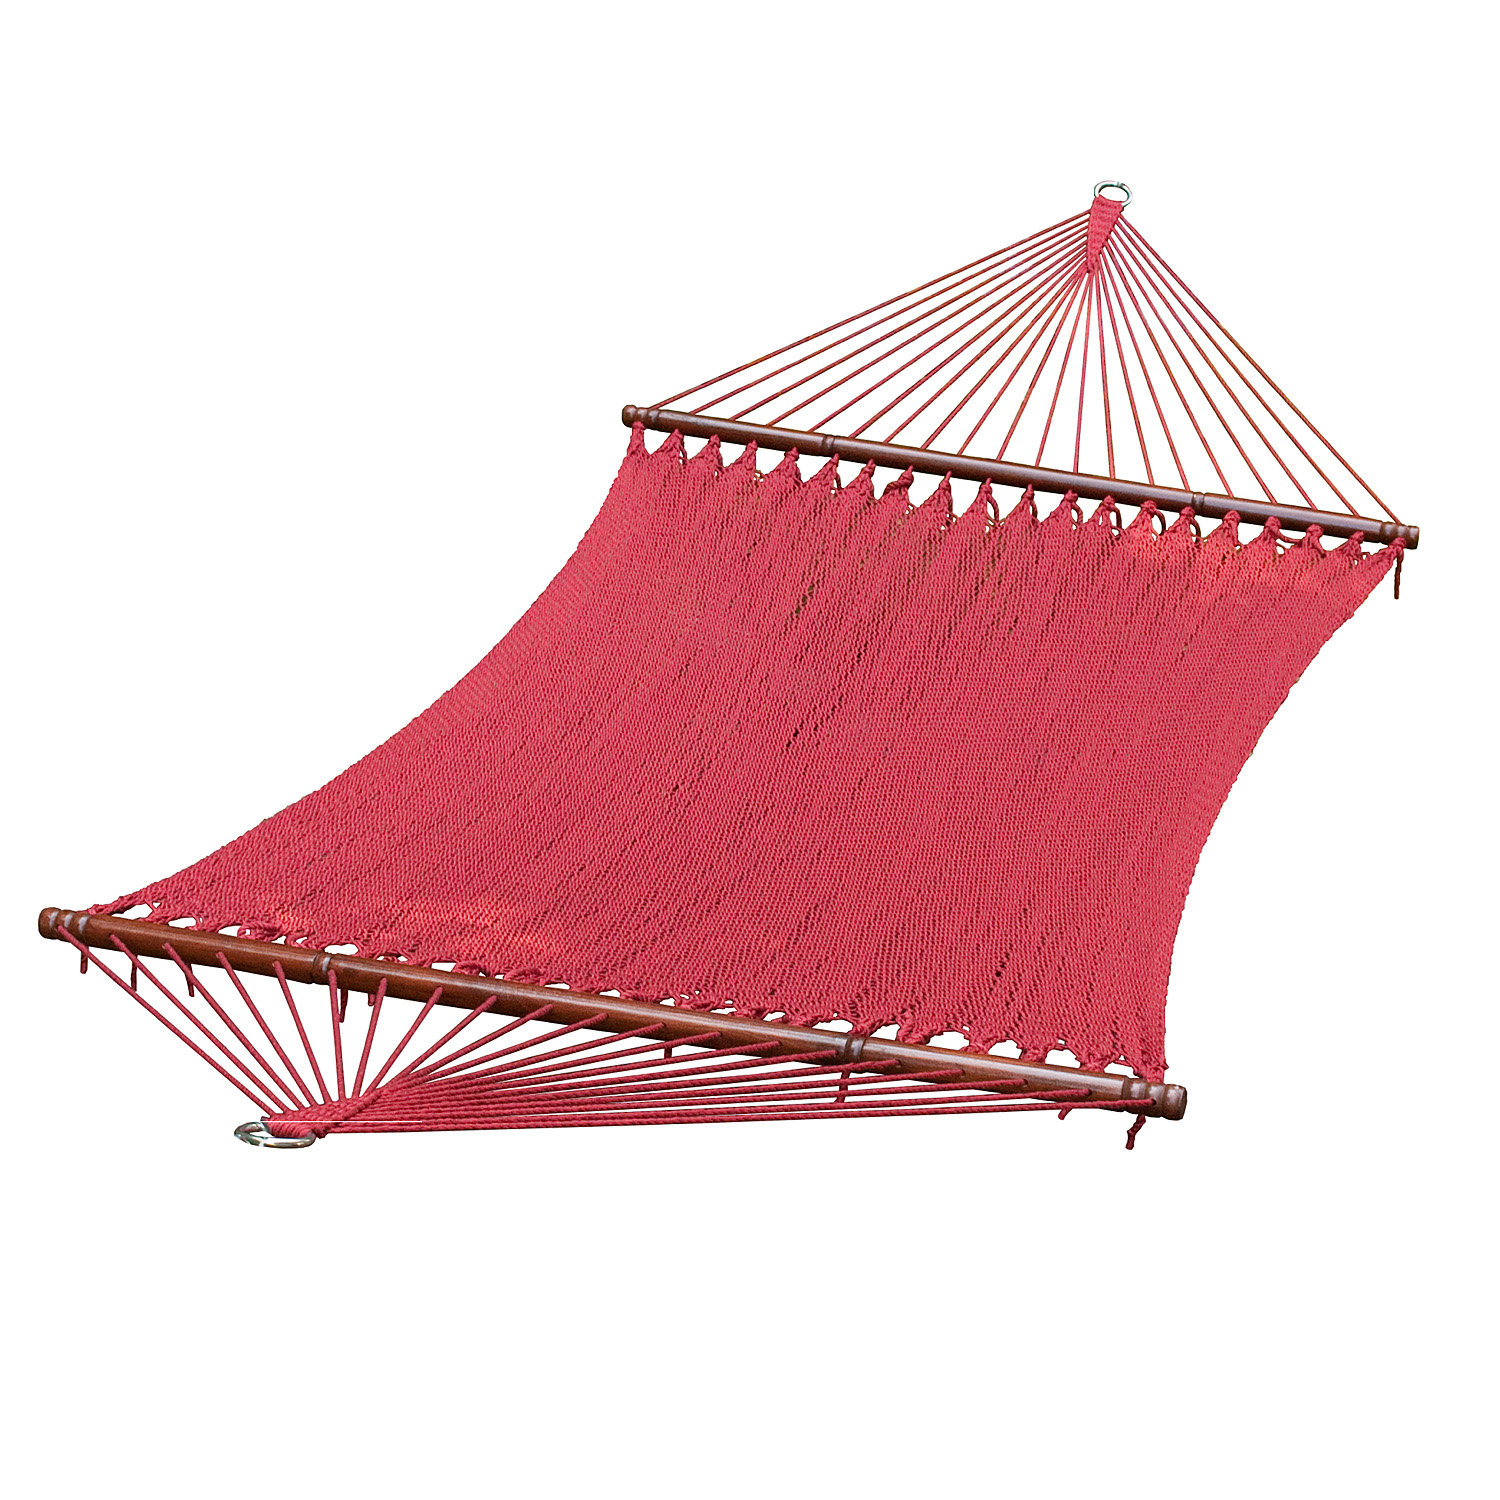 13 ft. 2-Point Tight Weave Soft Polyester Caribbean Rope Hammock, Burgundy